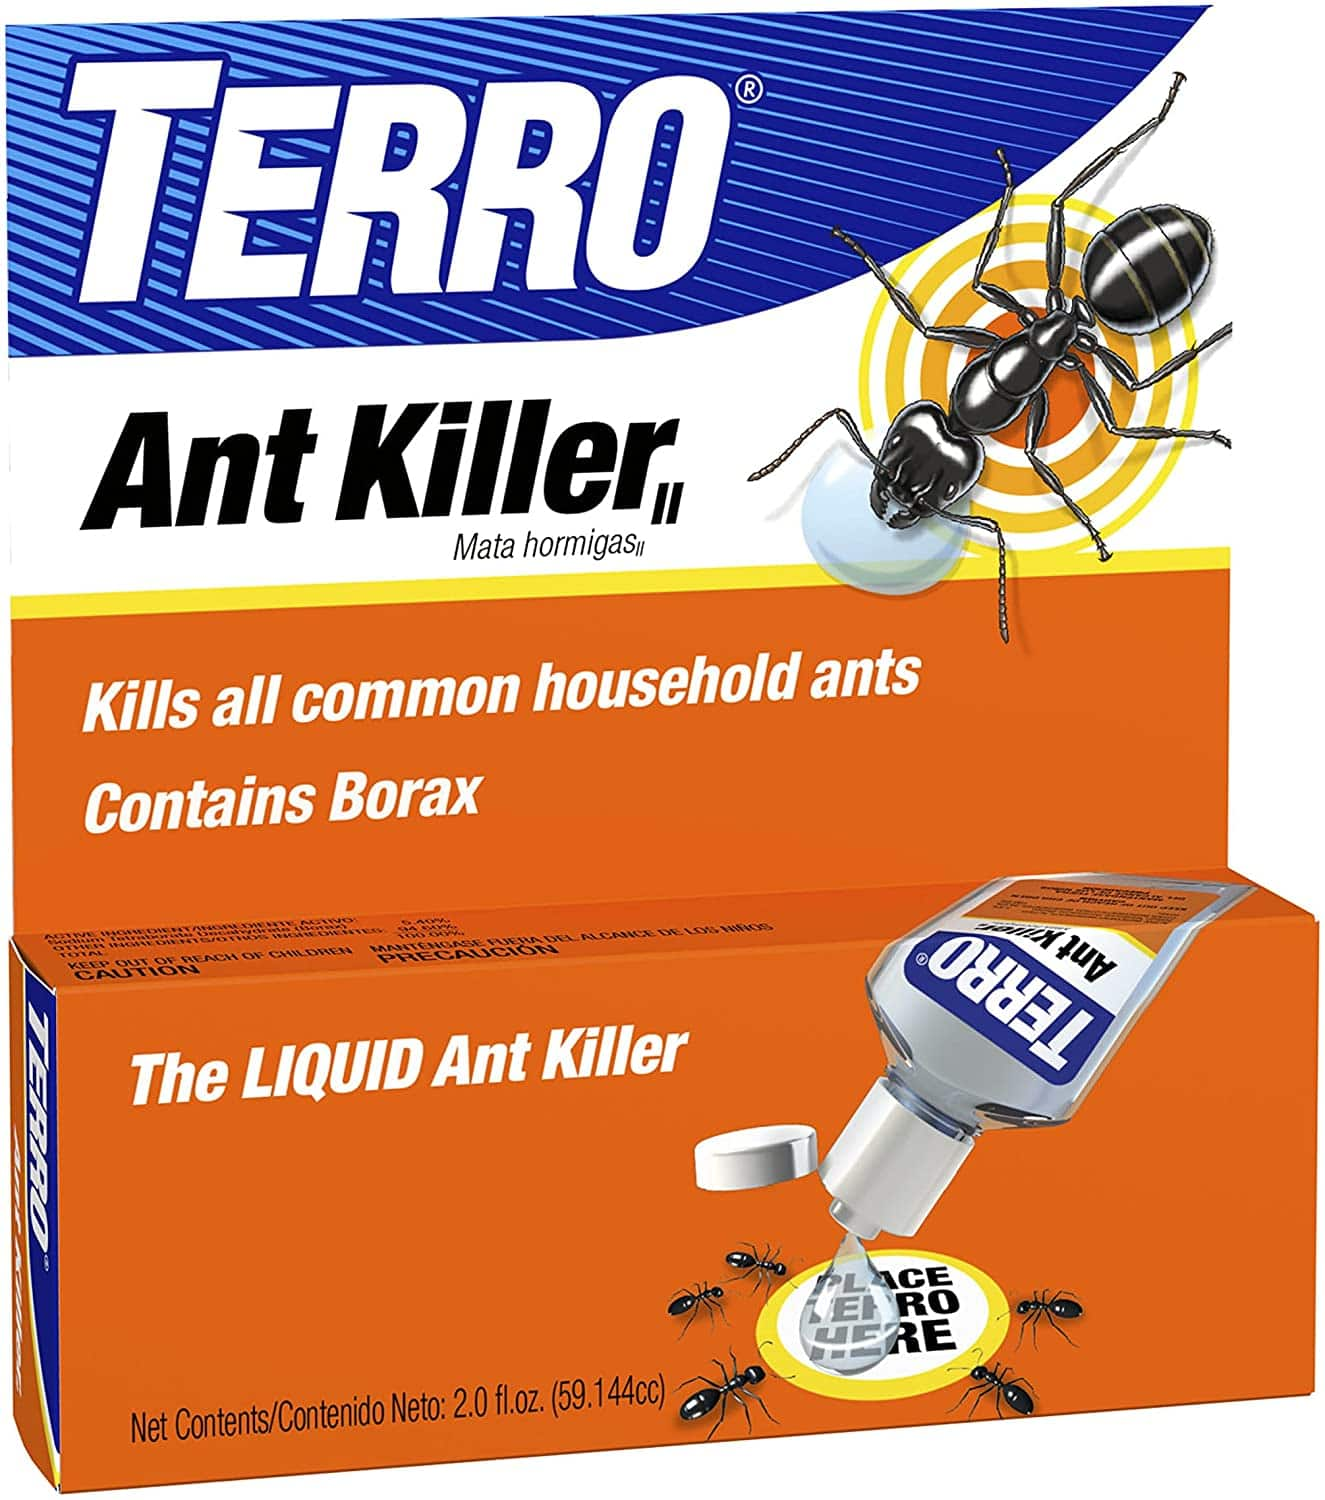 TERRO T200Liquid Ant Killer ll $3.97 Save (50%)